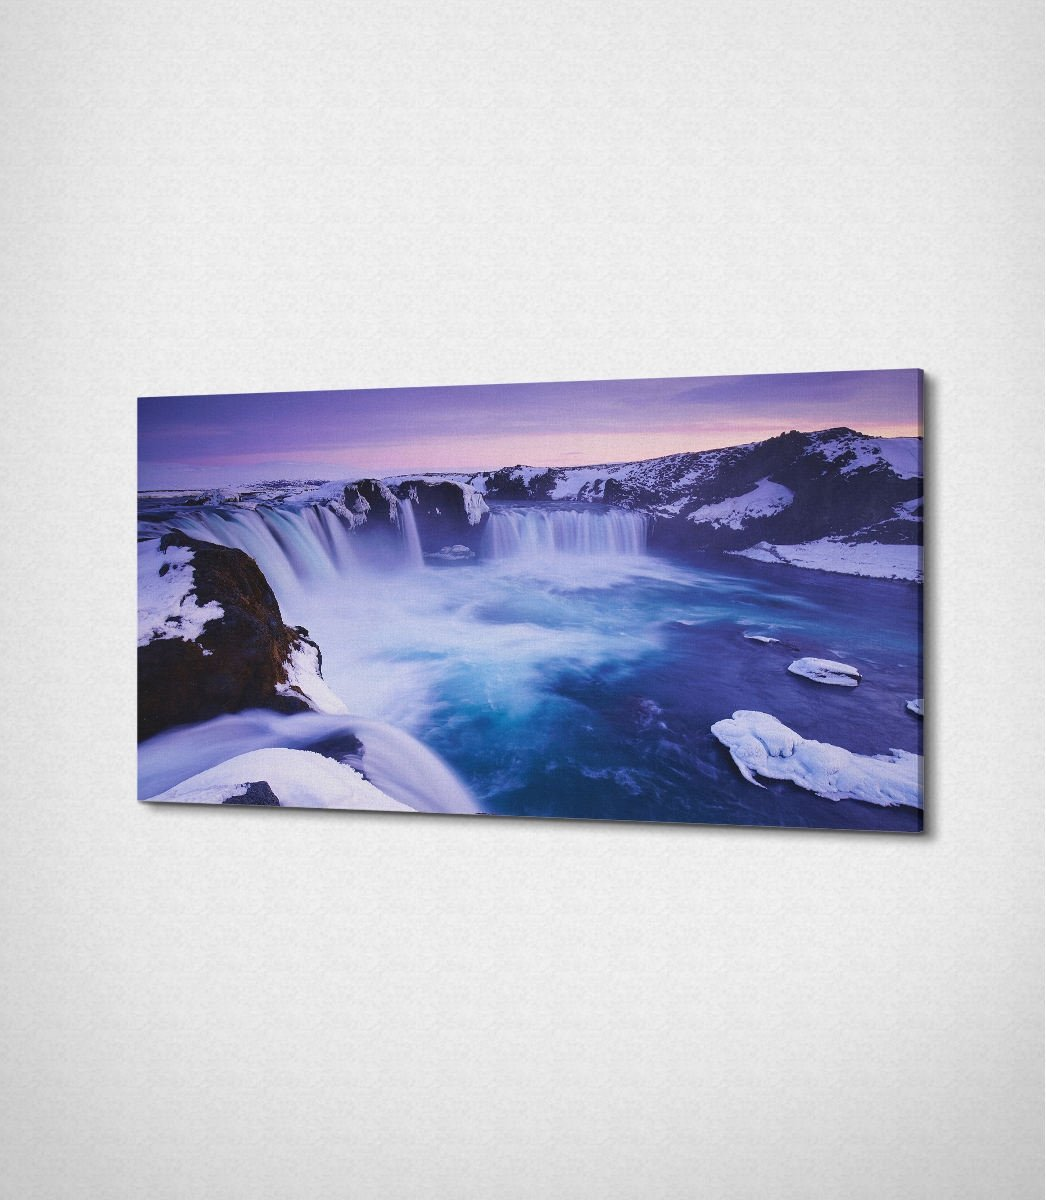 Purple Waterfalls | 100x45 cm | 2 cm